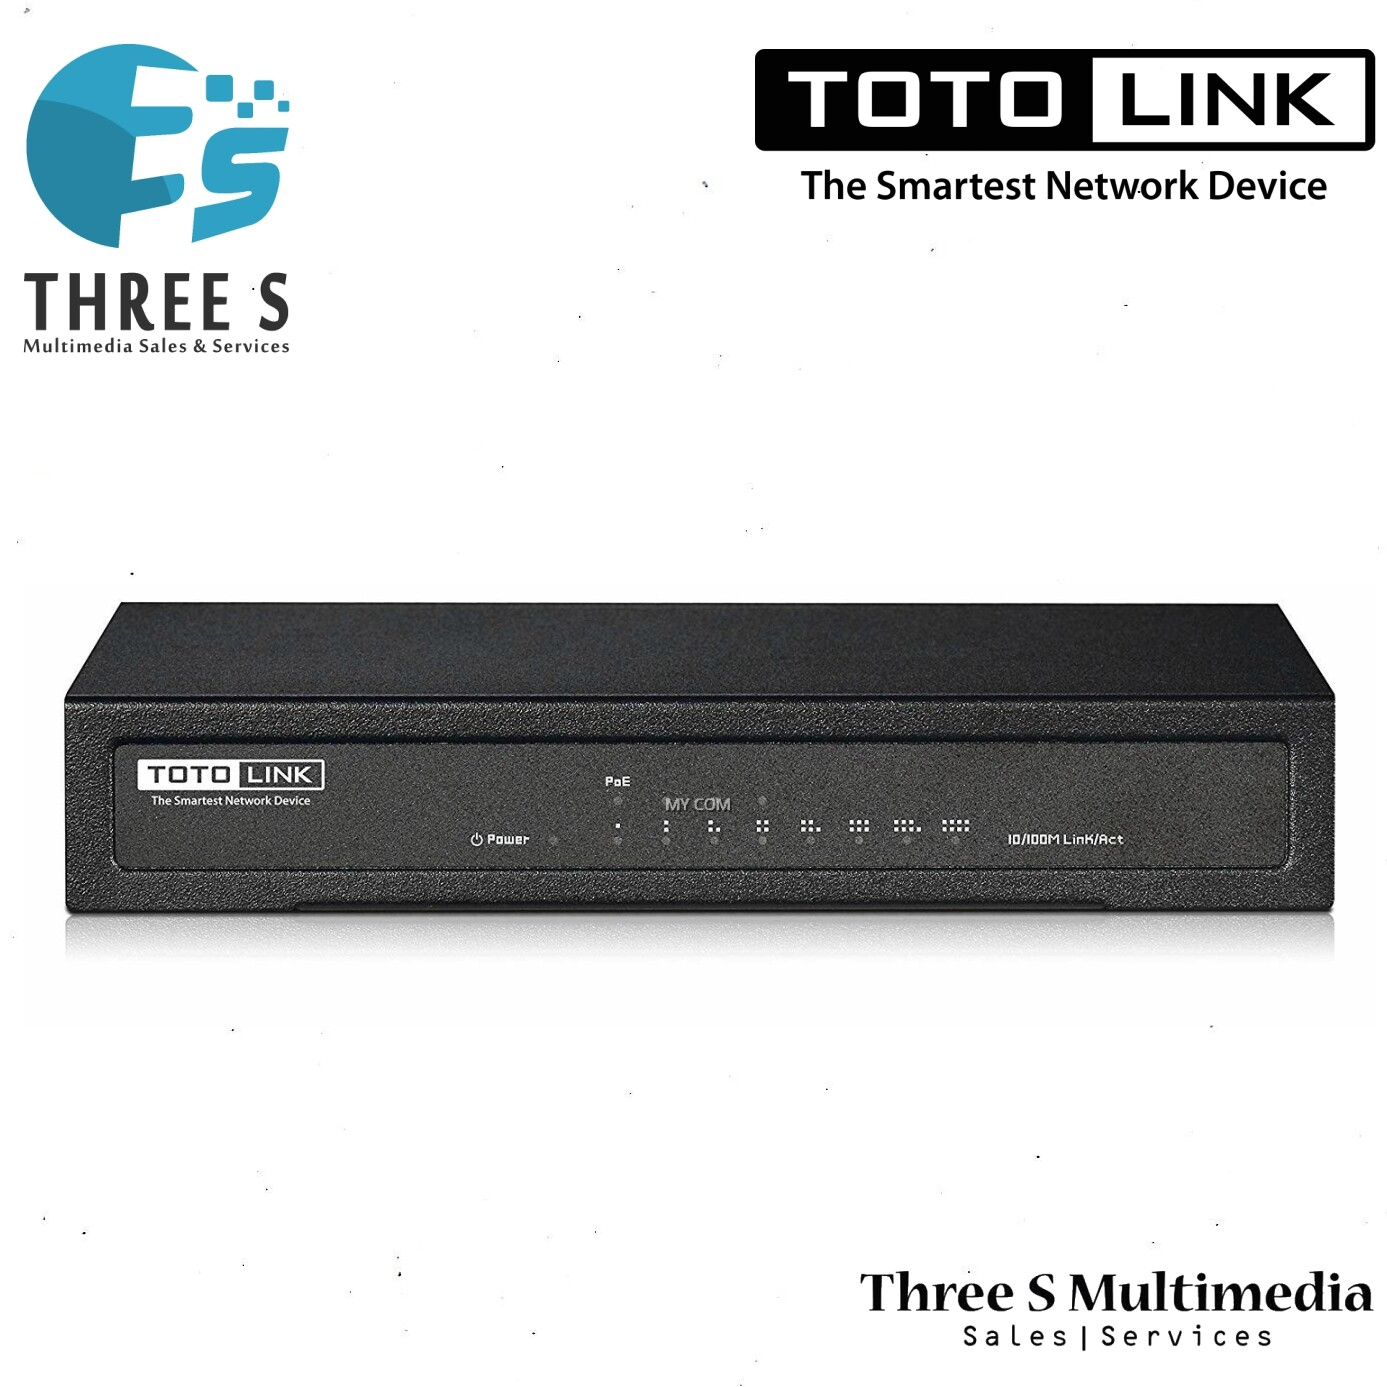 TOTO LINK 8-port 10/100Mbps Ethernet Switch With 4-Port PoE SW804P